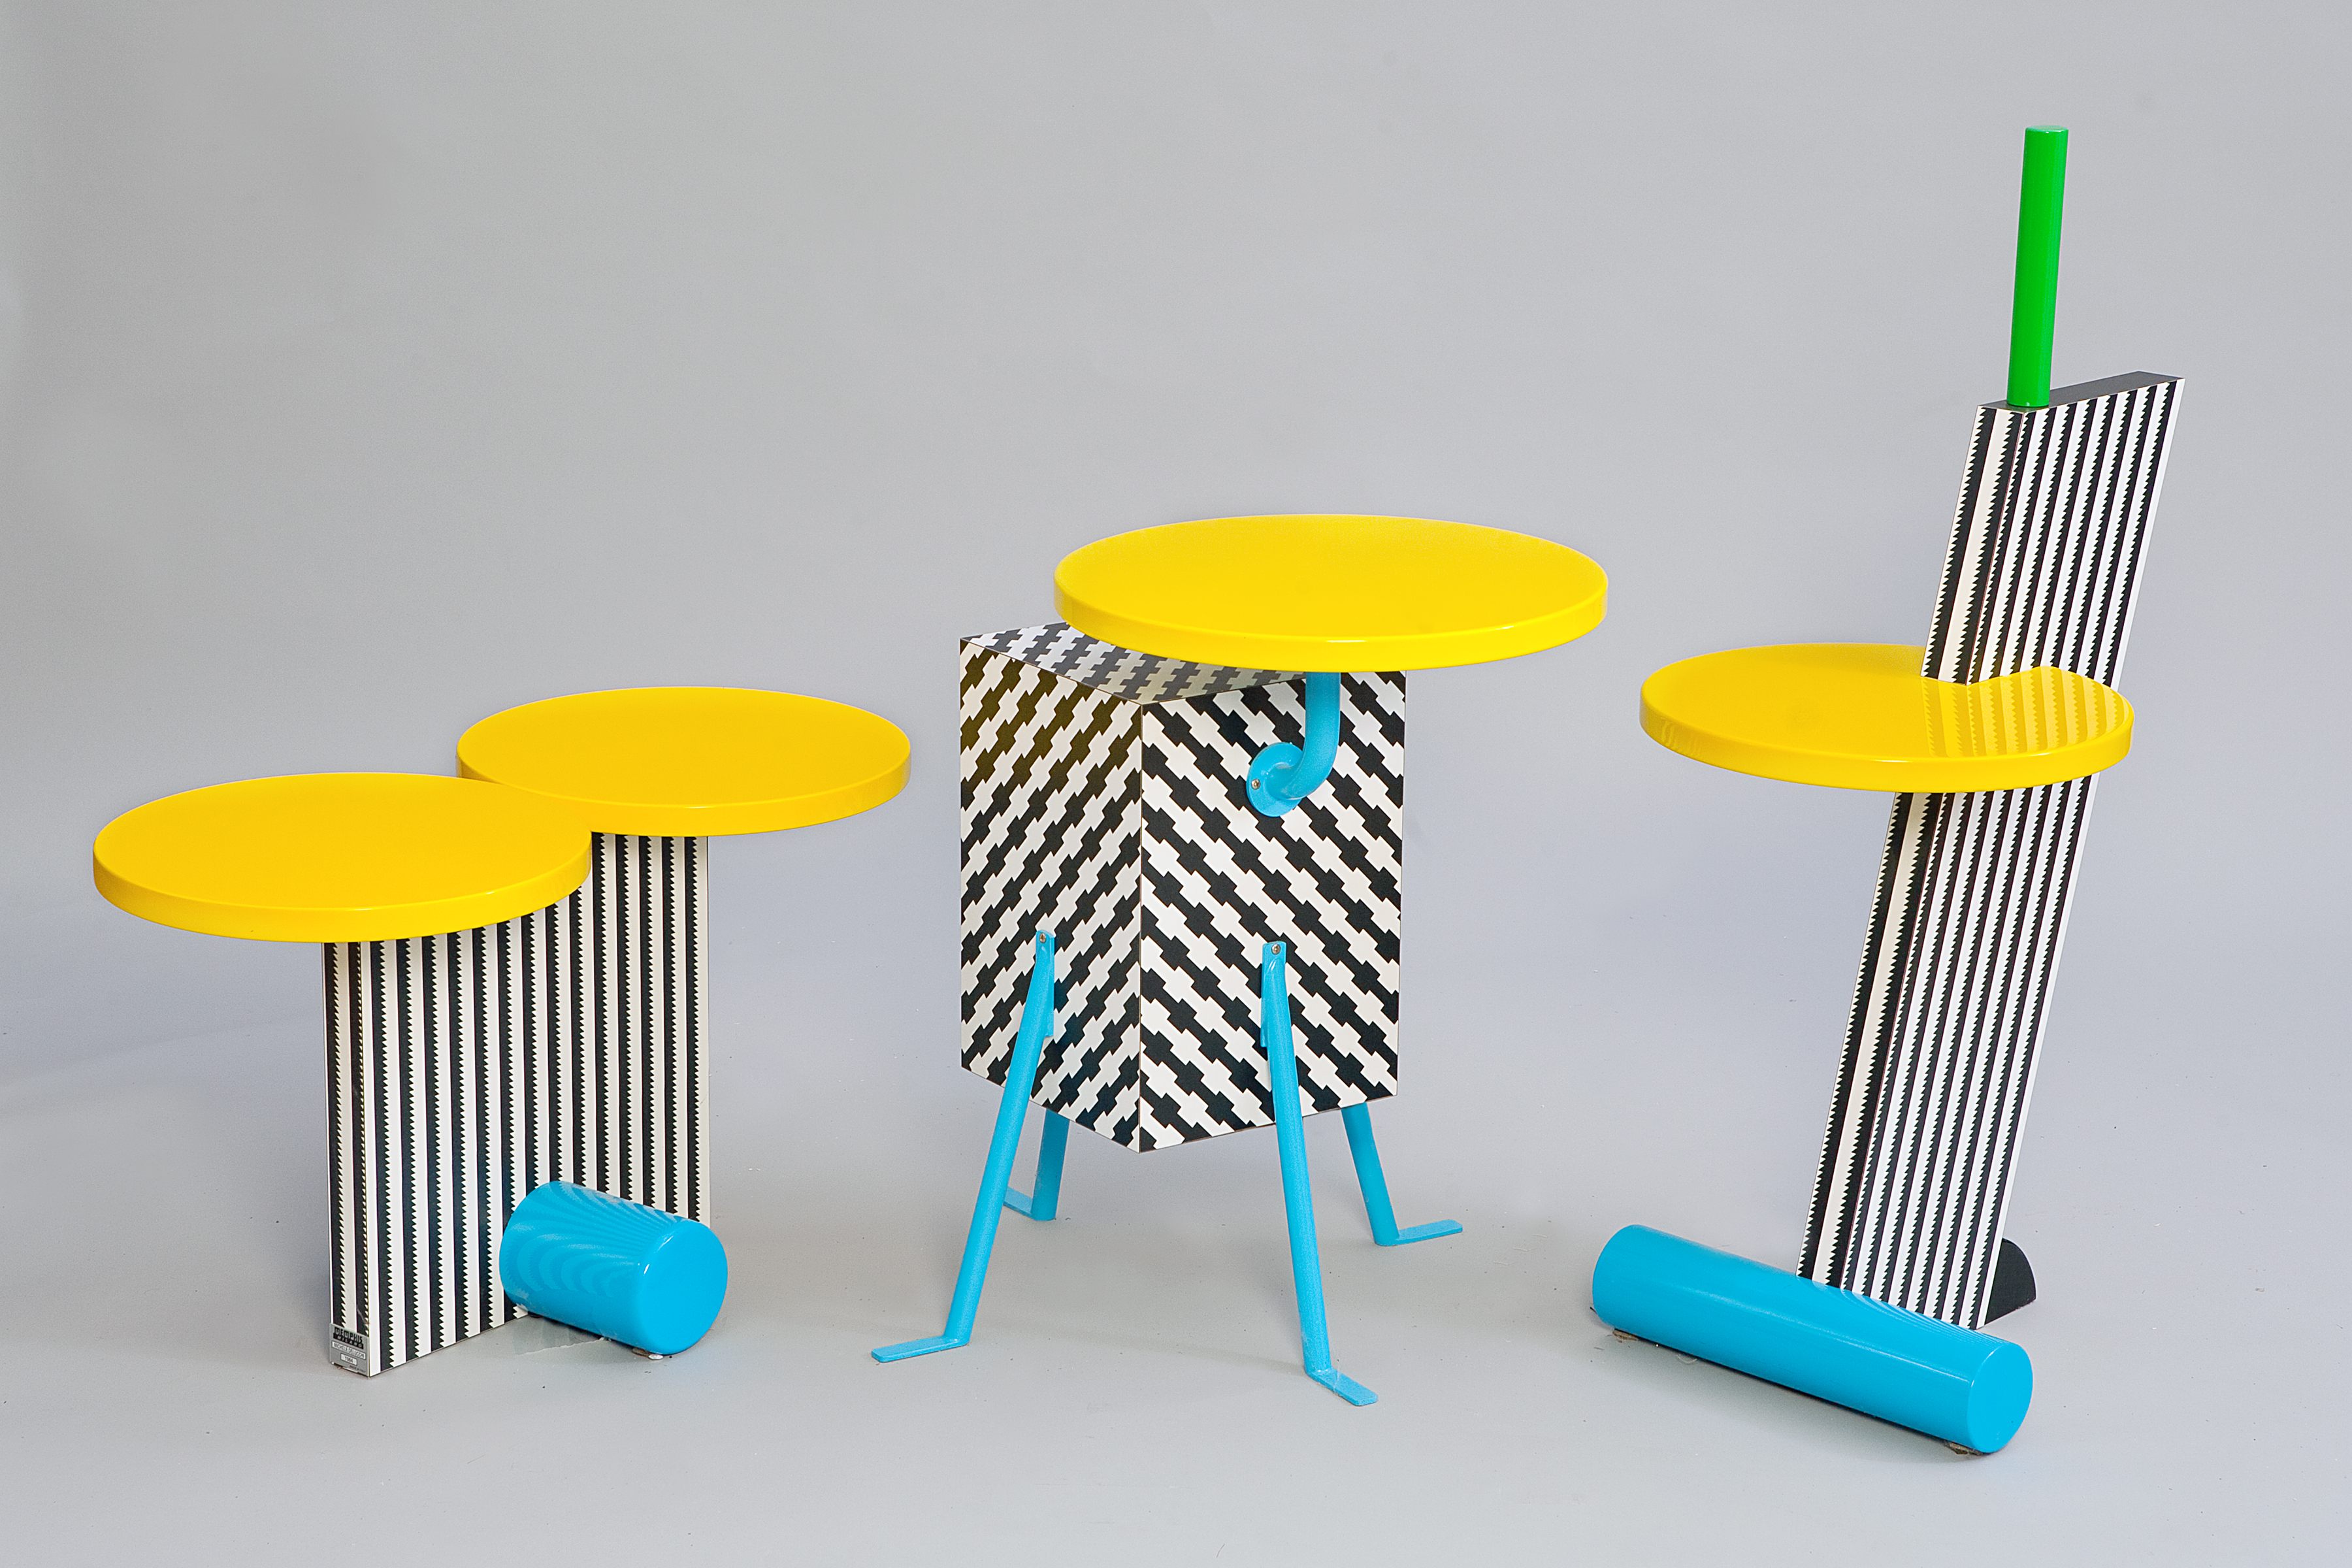 research find five different types of furniture that memphis designed which one is your favourite group e